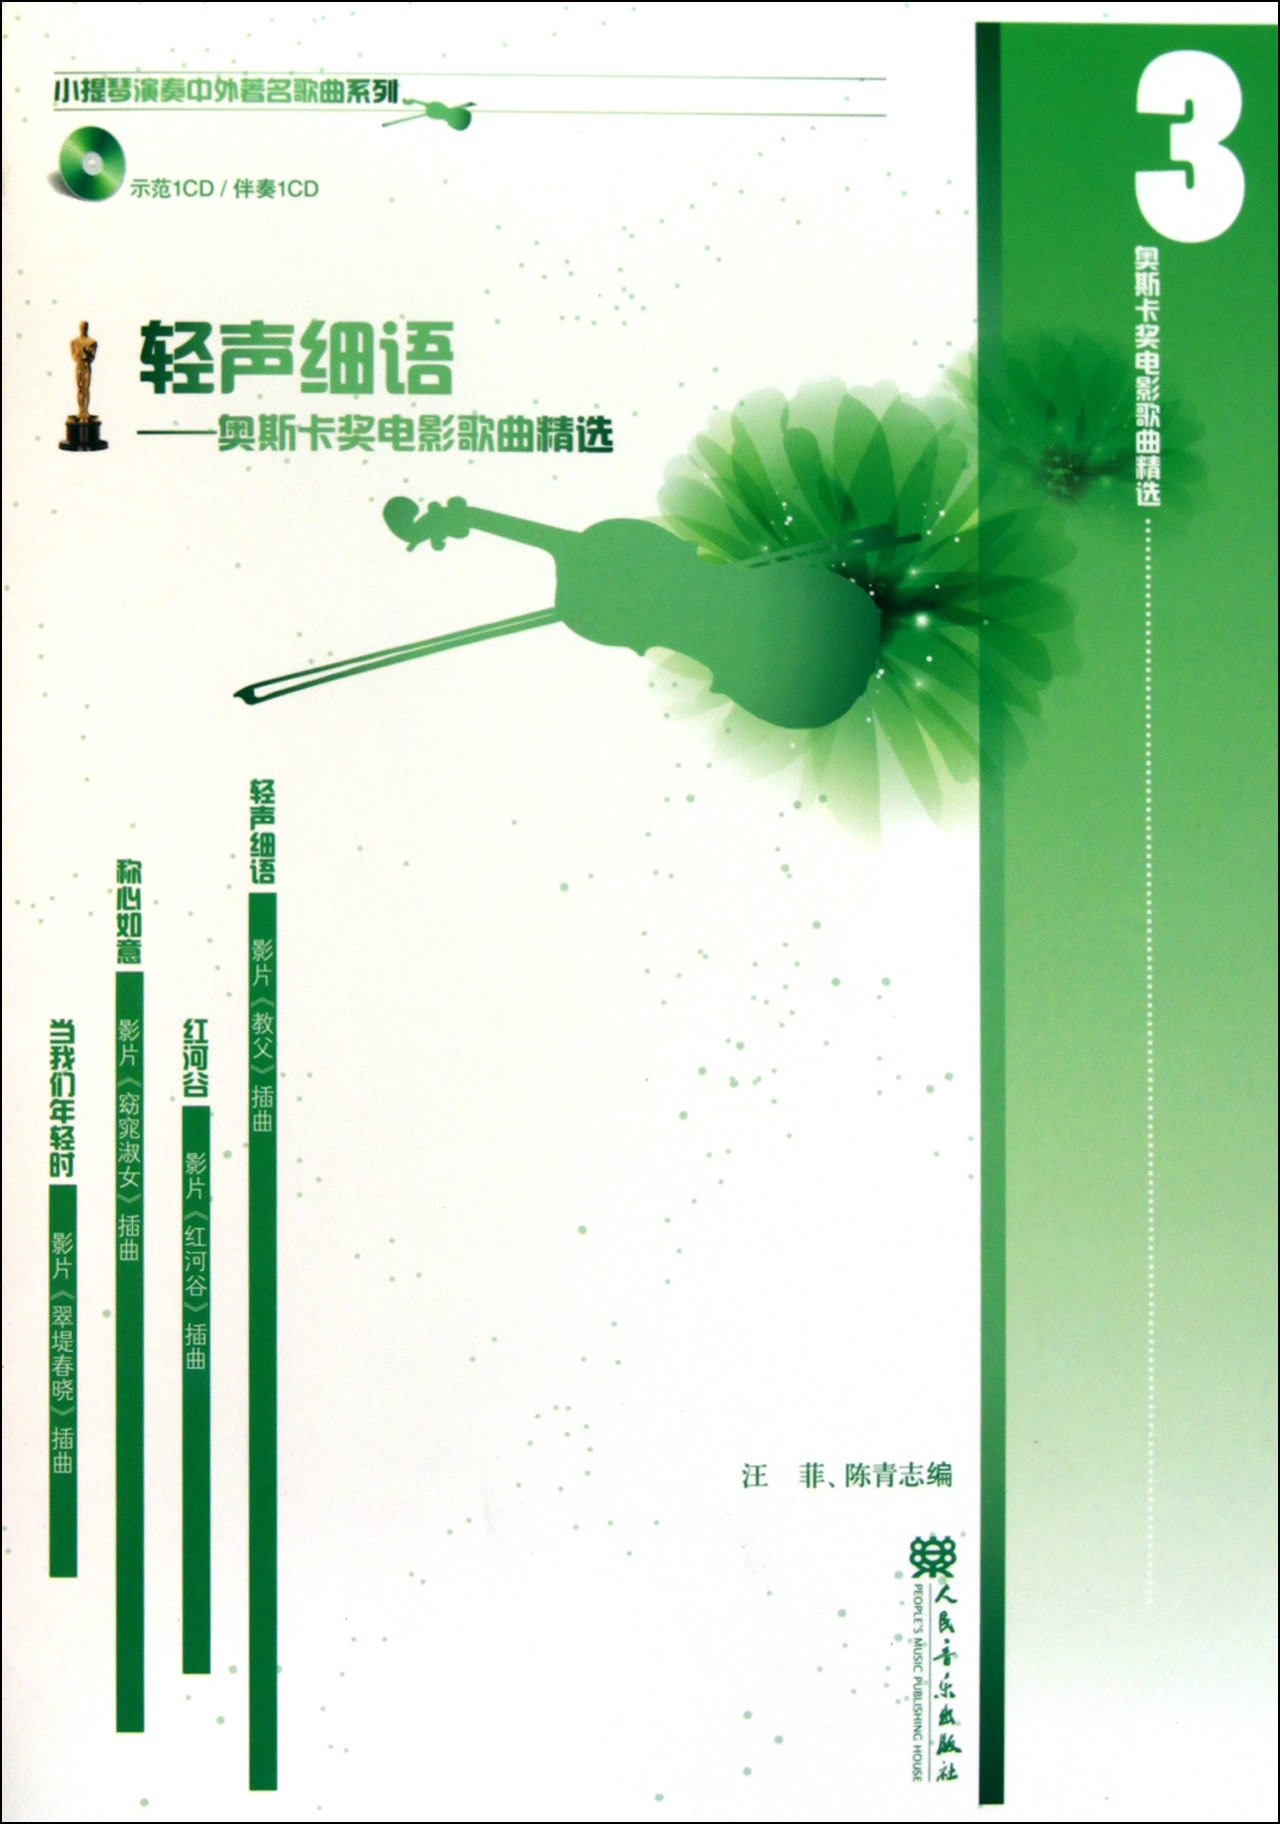 Whisper - Oscar Movie Songs Selection - 3 - with CD (Chinese Edition) ebook